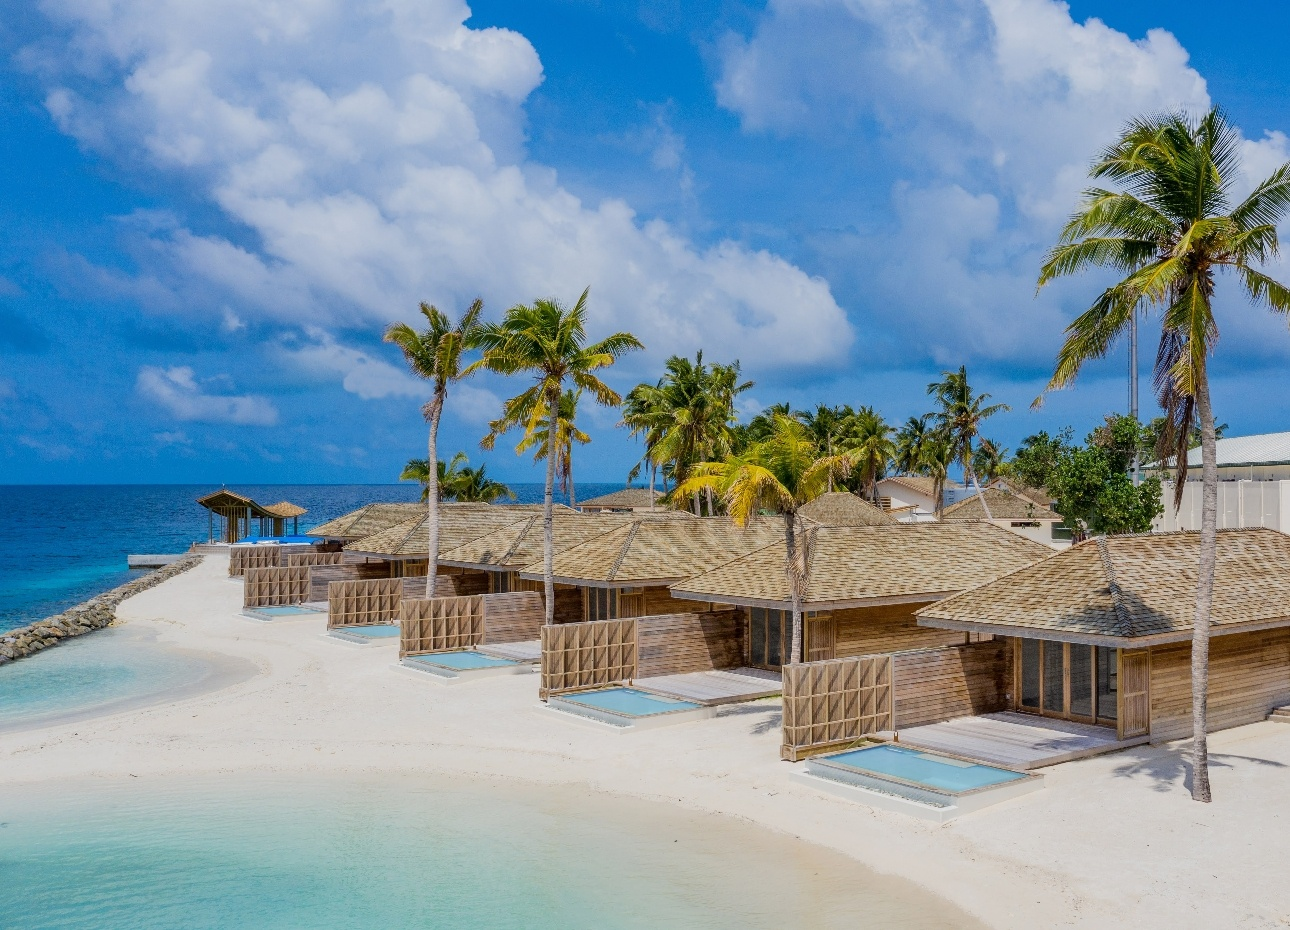 beach suites with individual pools and beach area and then main ocean view